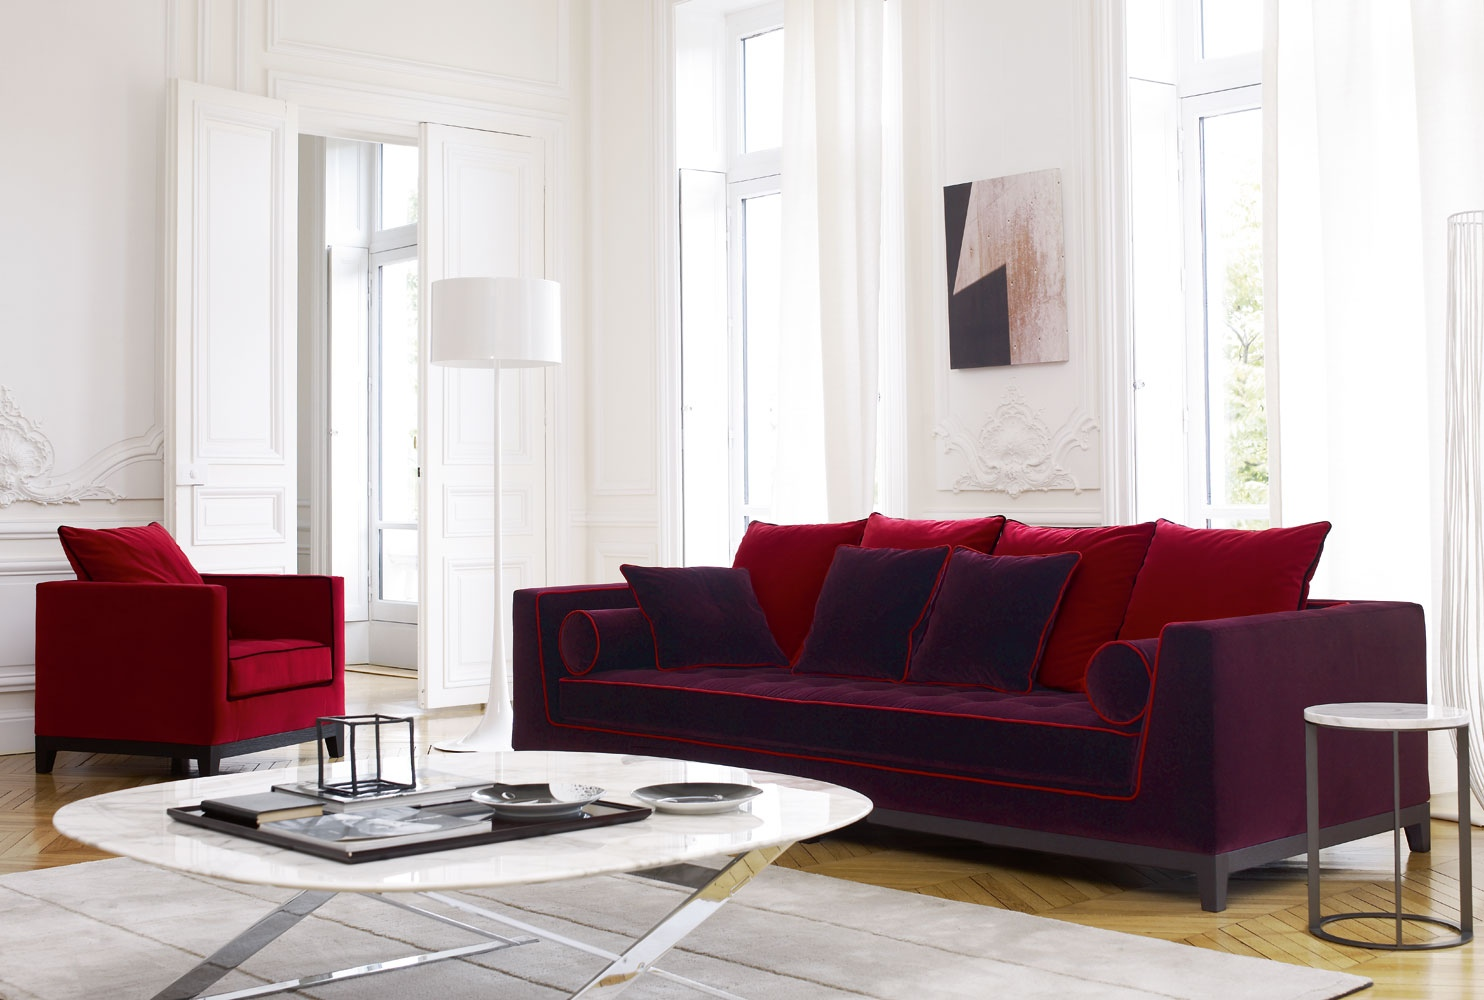 purple red sofa and chair interior design ideas